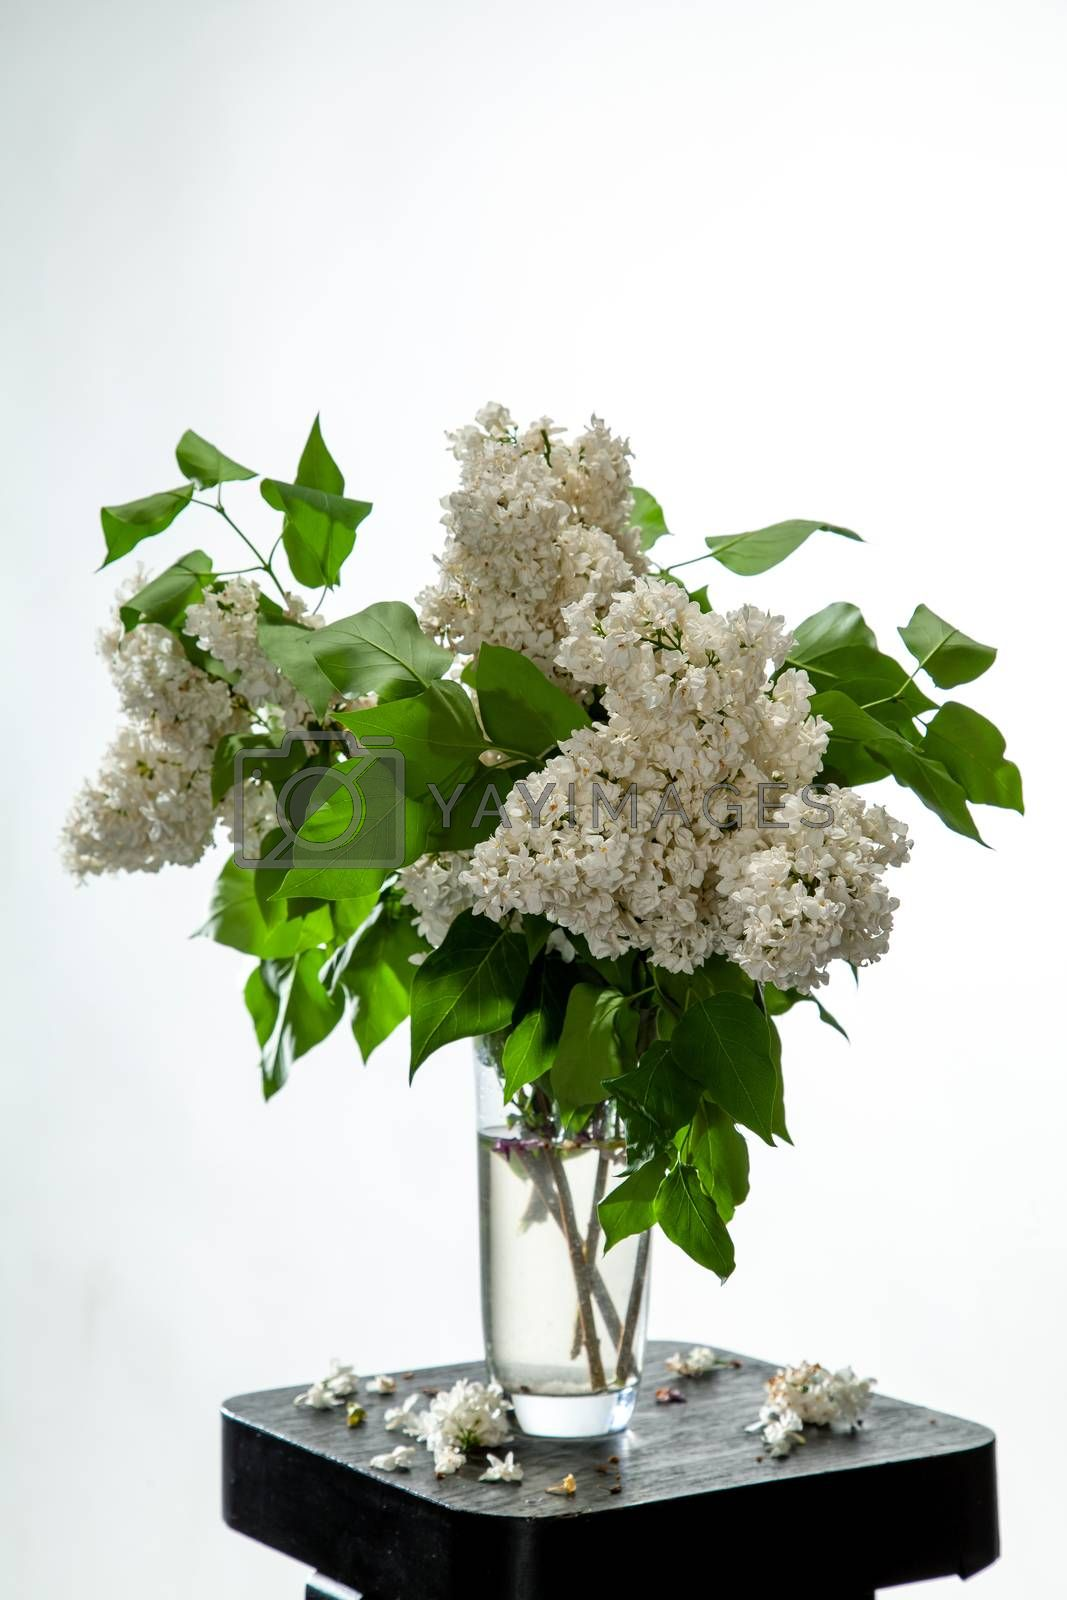 White branches of lilac in glass vase on white background. Spring branch of blooming lilac on the black table with white background. Fallen lilac flowers on the table.